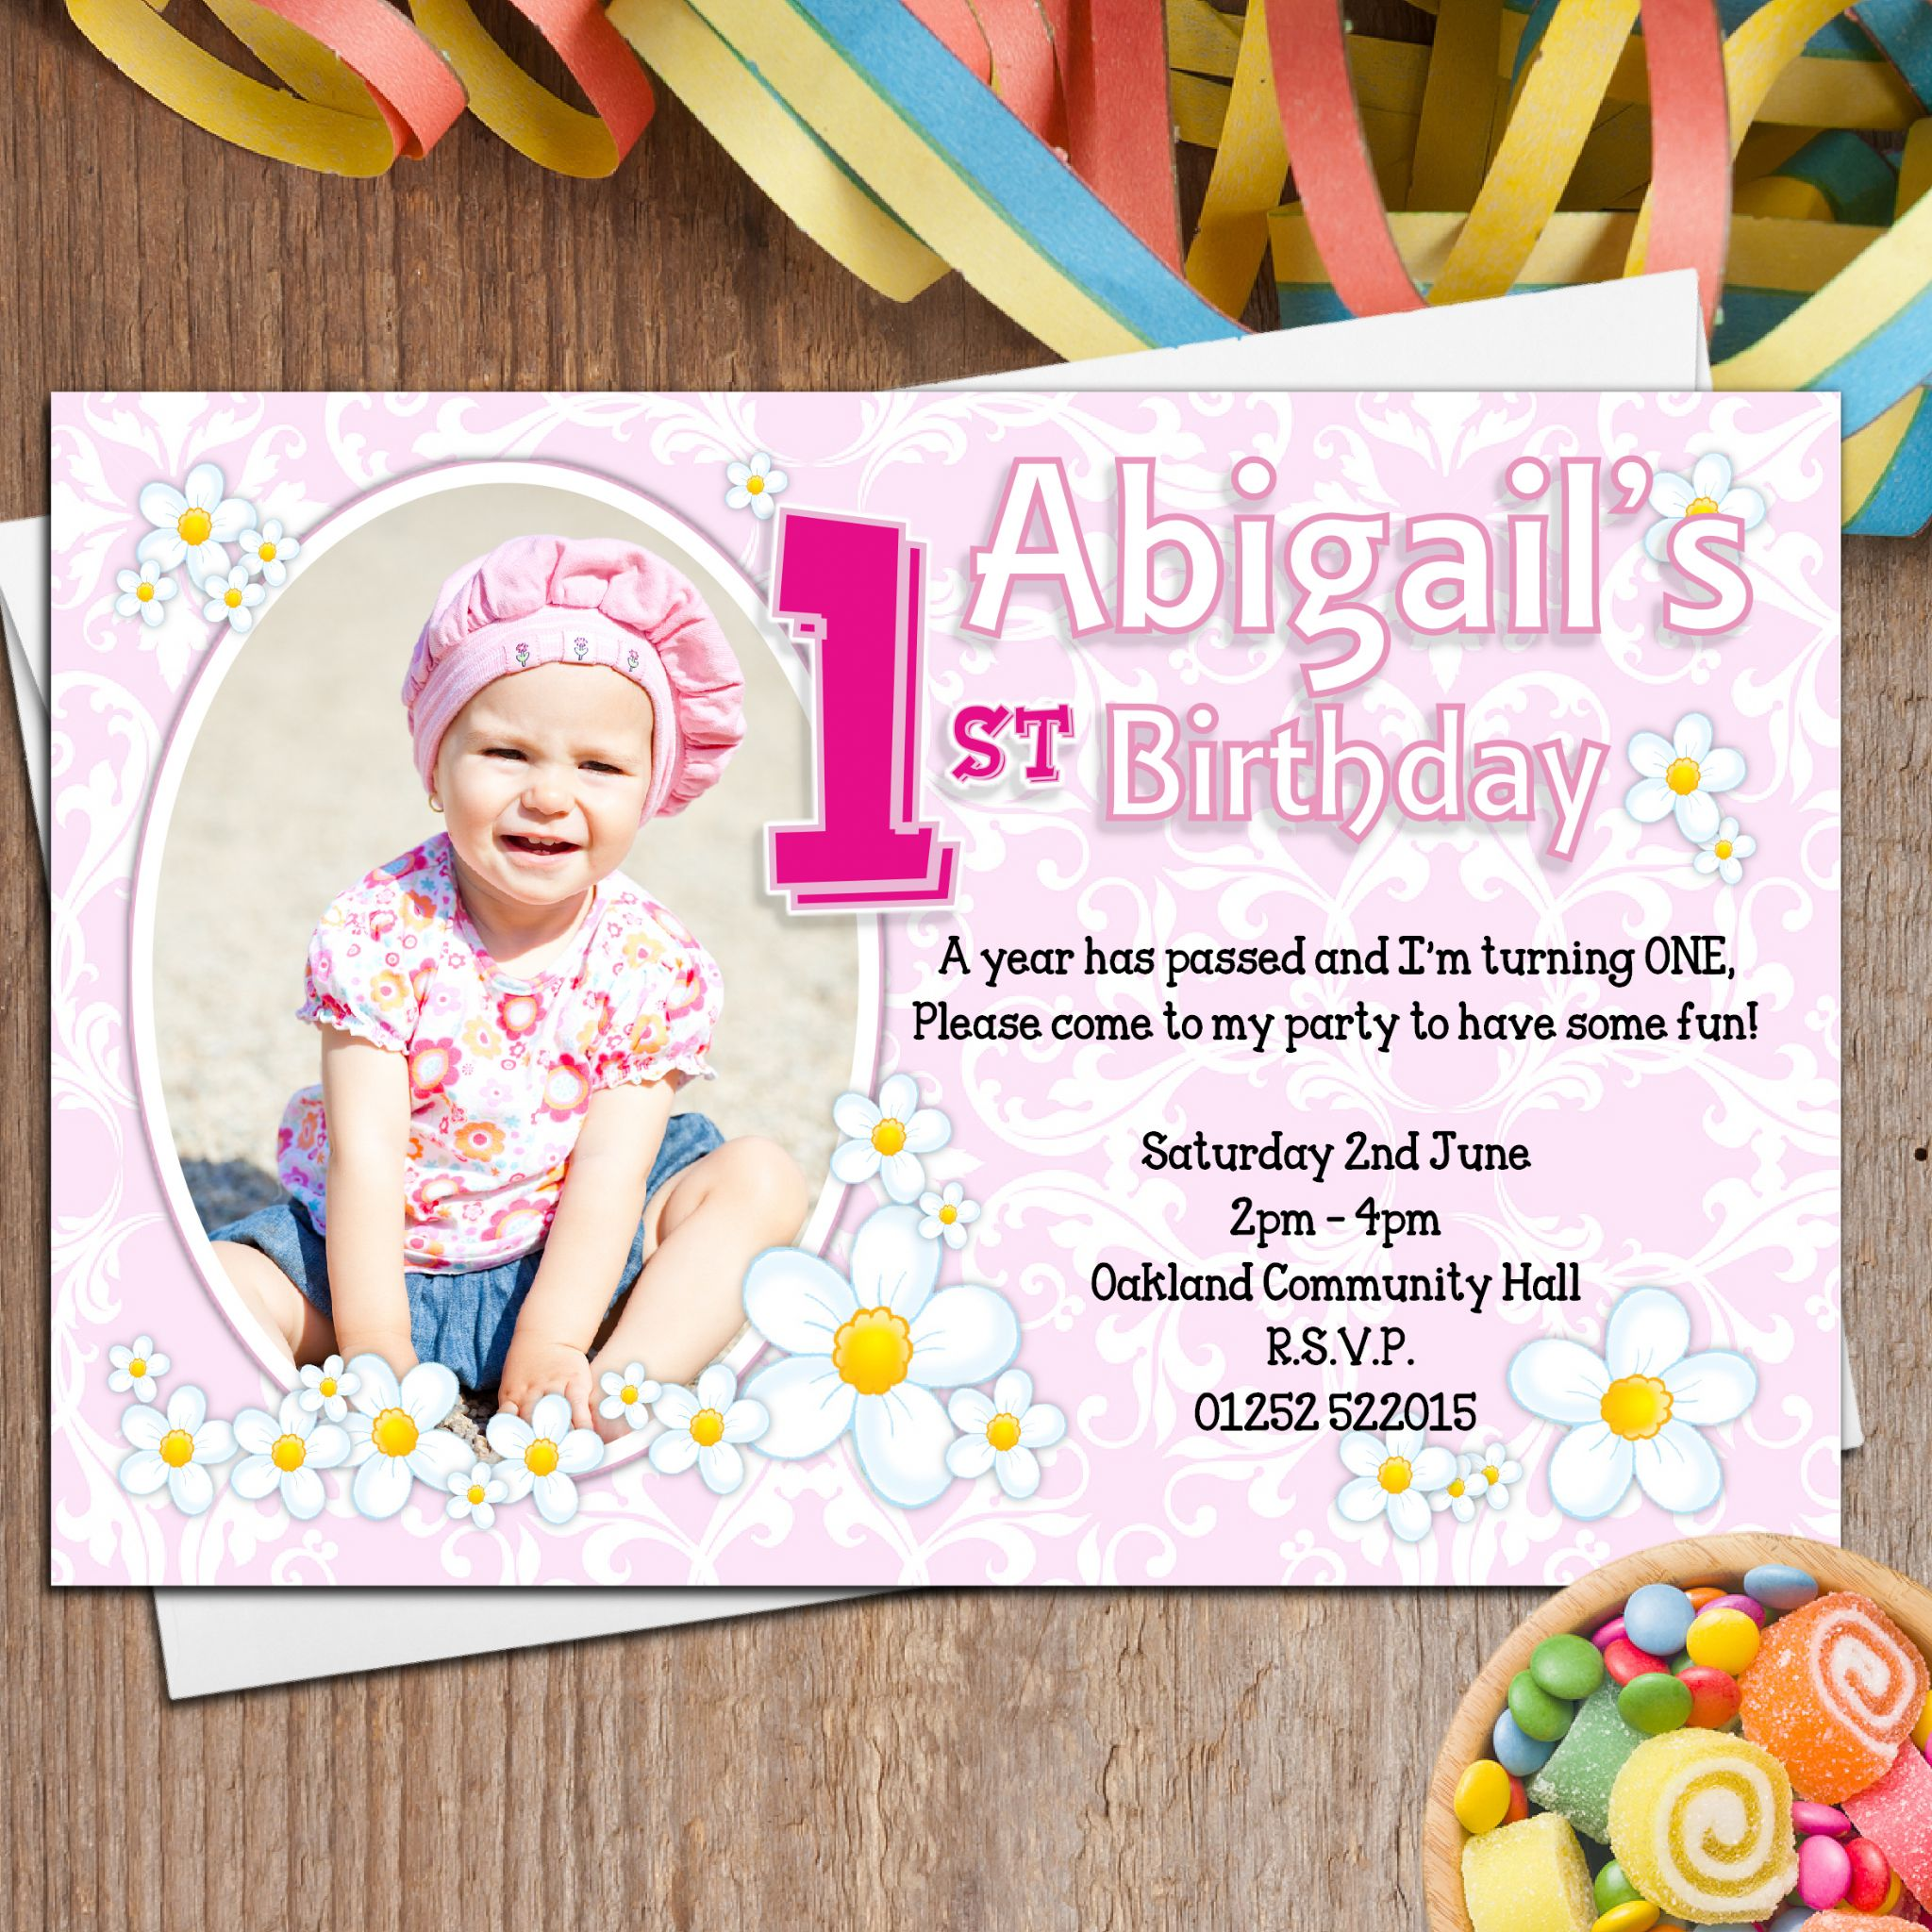 Invitation card ideas for birthday party kubreforic invitation filmwisefo